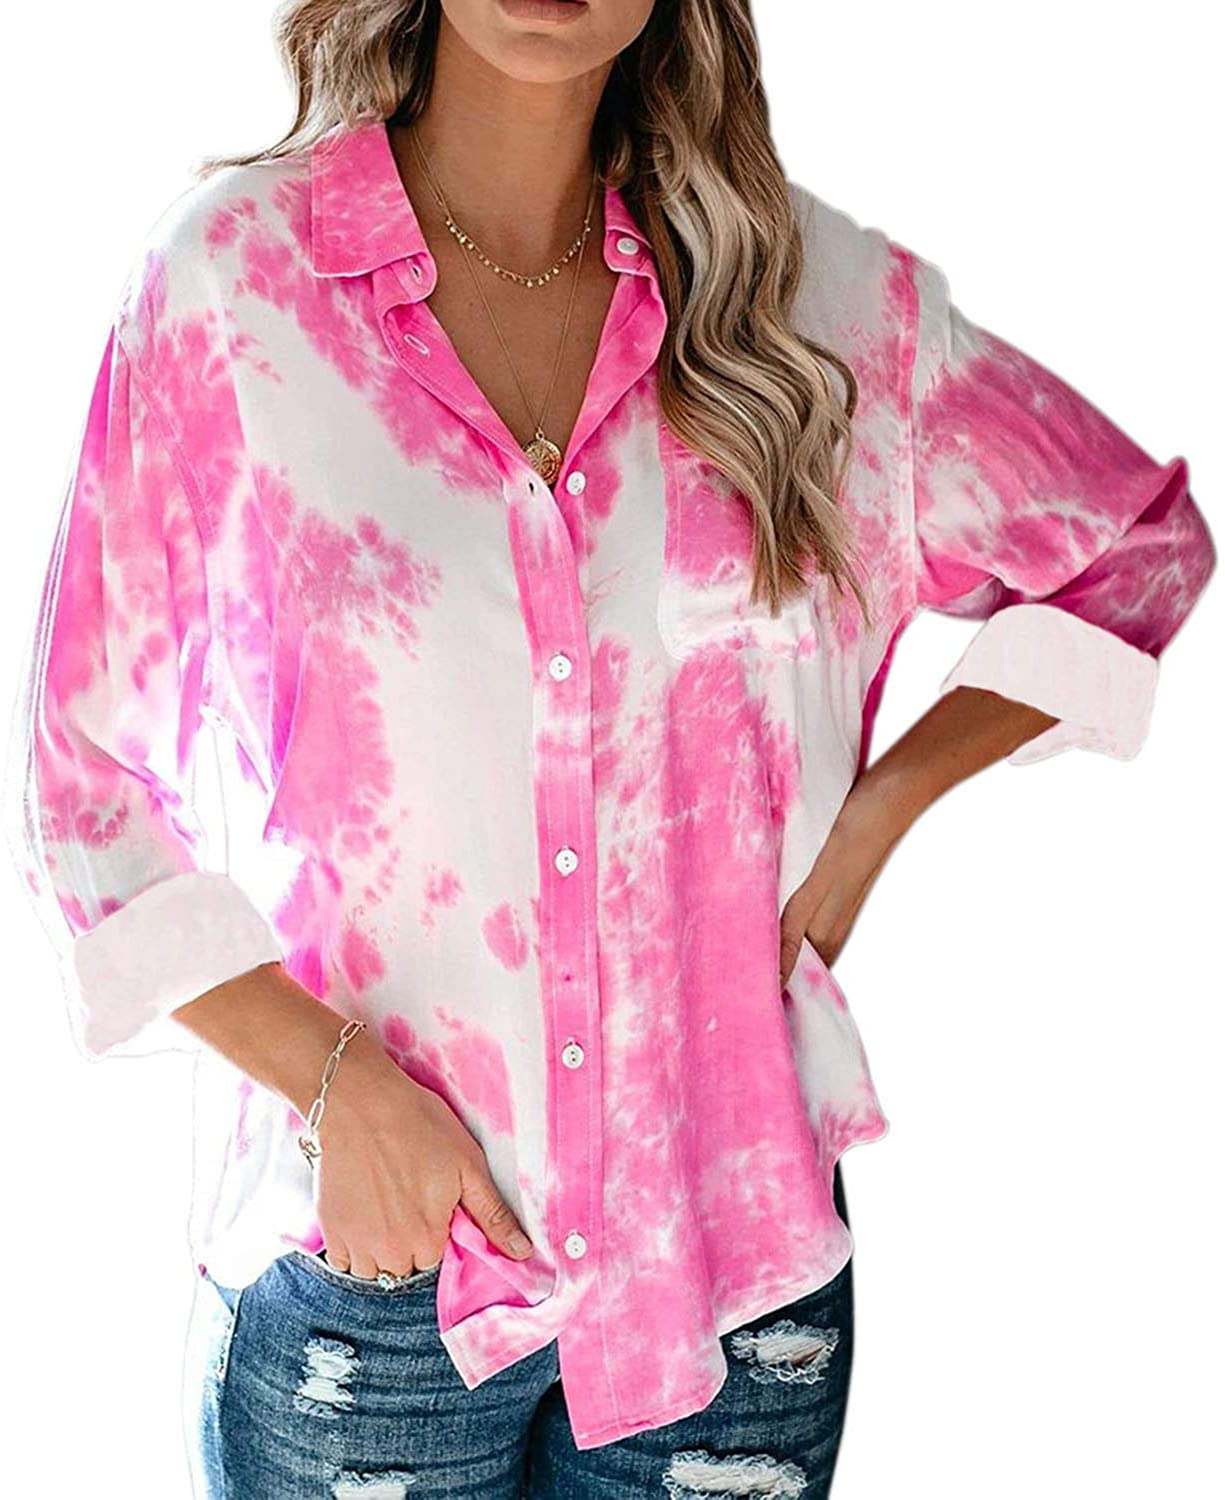 Tie Dye Long Sleeve Shirts for Women/Teen Girls, Casual V Neck Button Down Blouses Tops